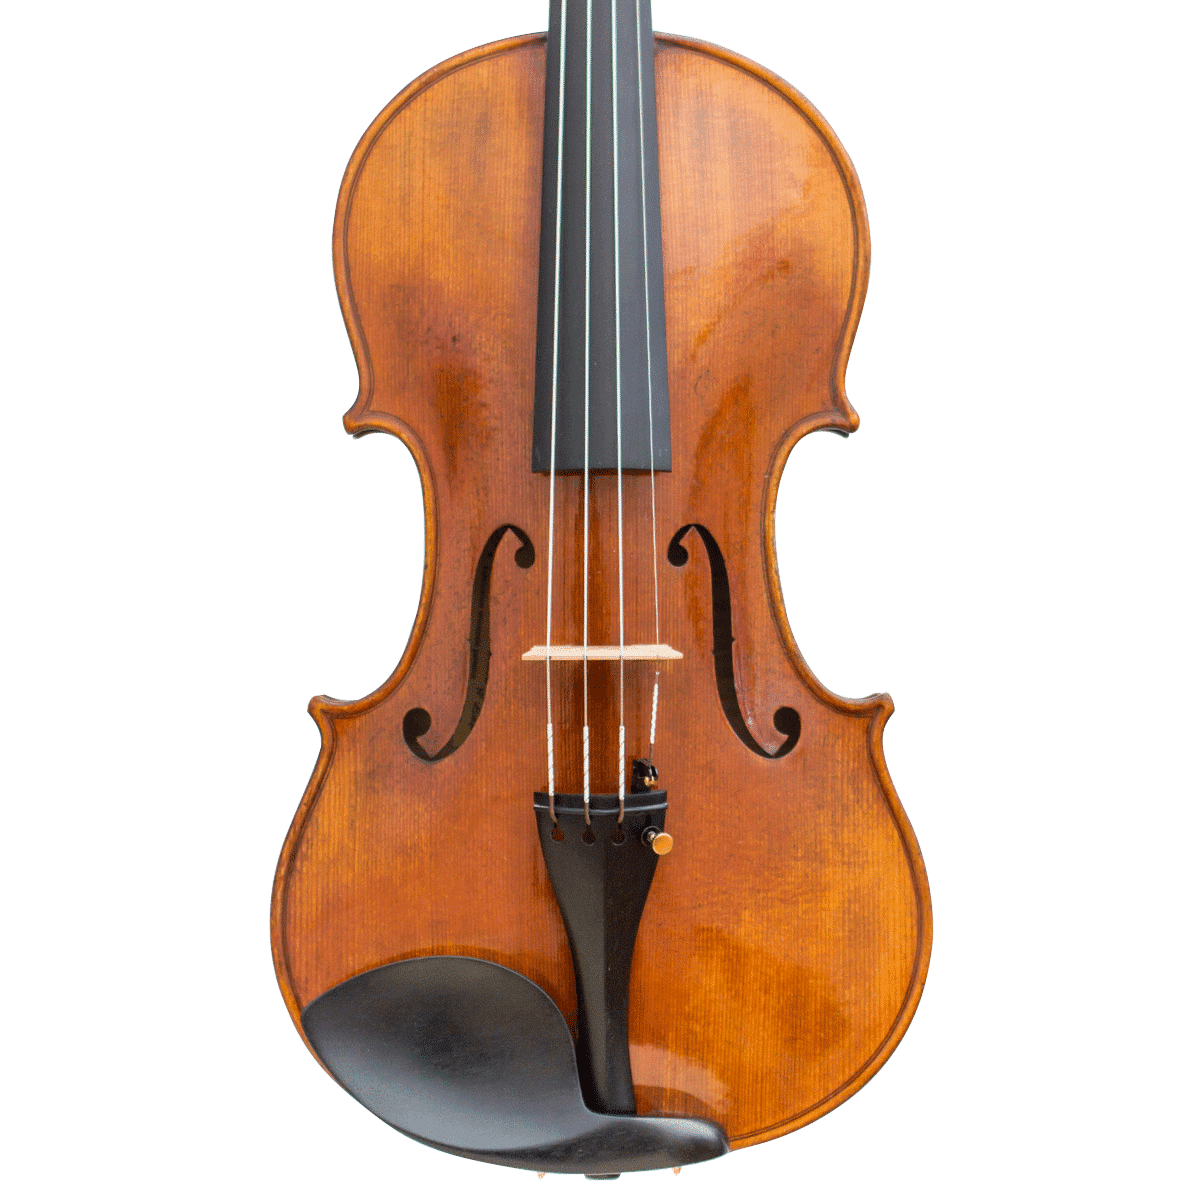 Violon Passion Tradition Kaiming Guan KMG modèle Guarneri 1743 Il Cannone de face